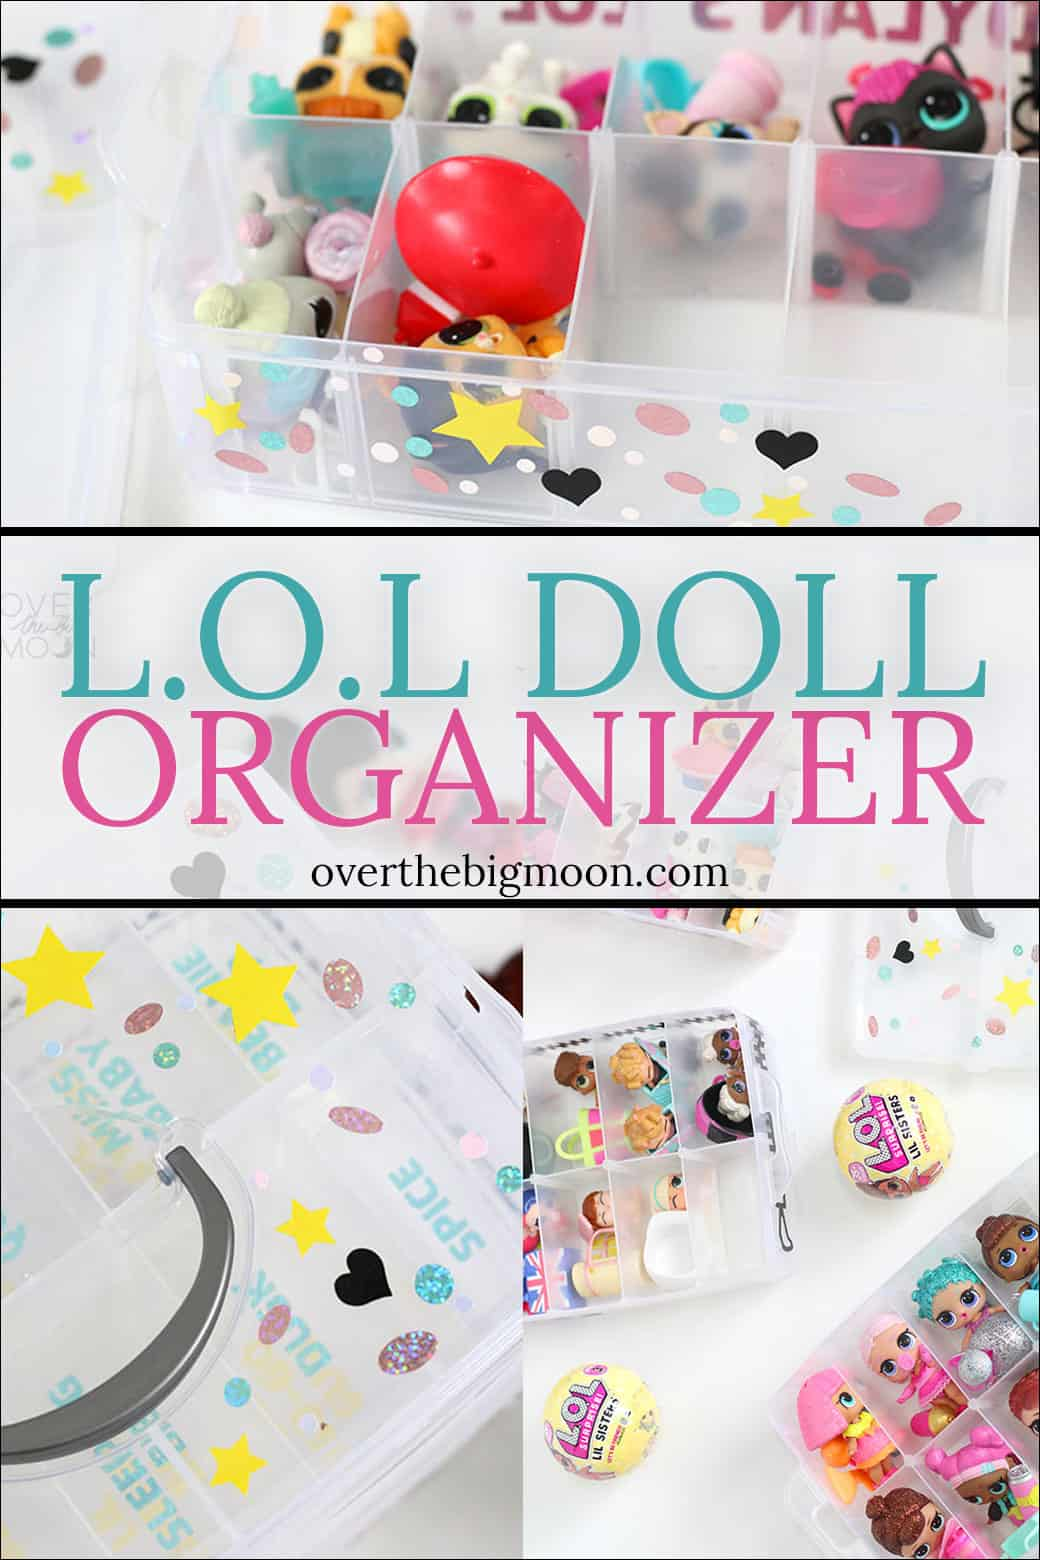 LOL Doll Organizer - customize a clear container to organizer LOL Dolls, Hatichimals or Shopkins! From overthebigmoon.com!